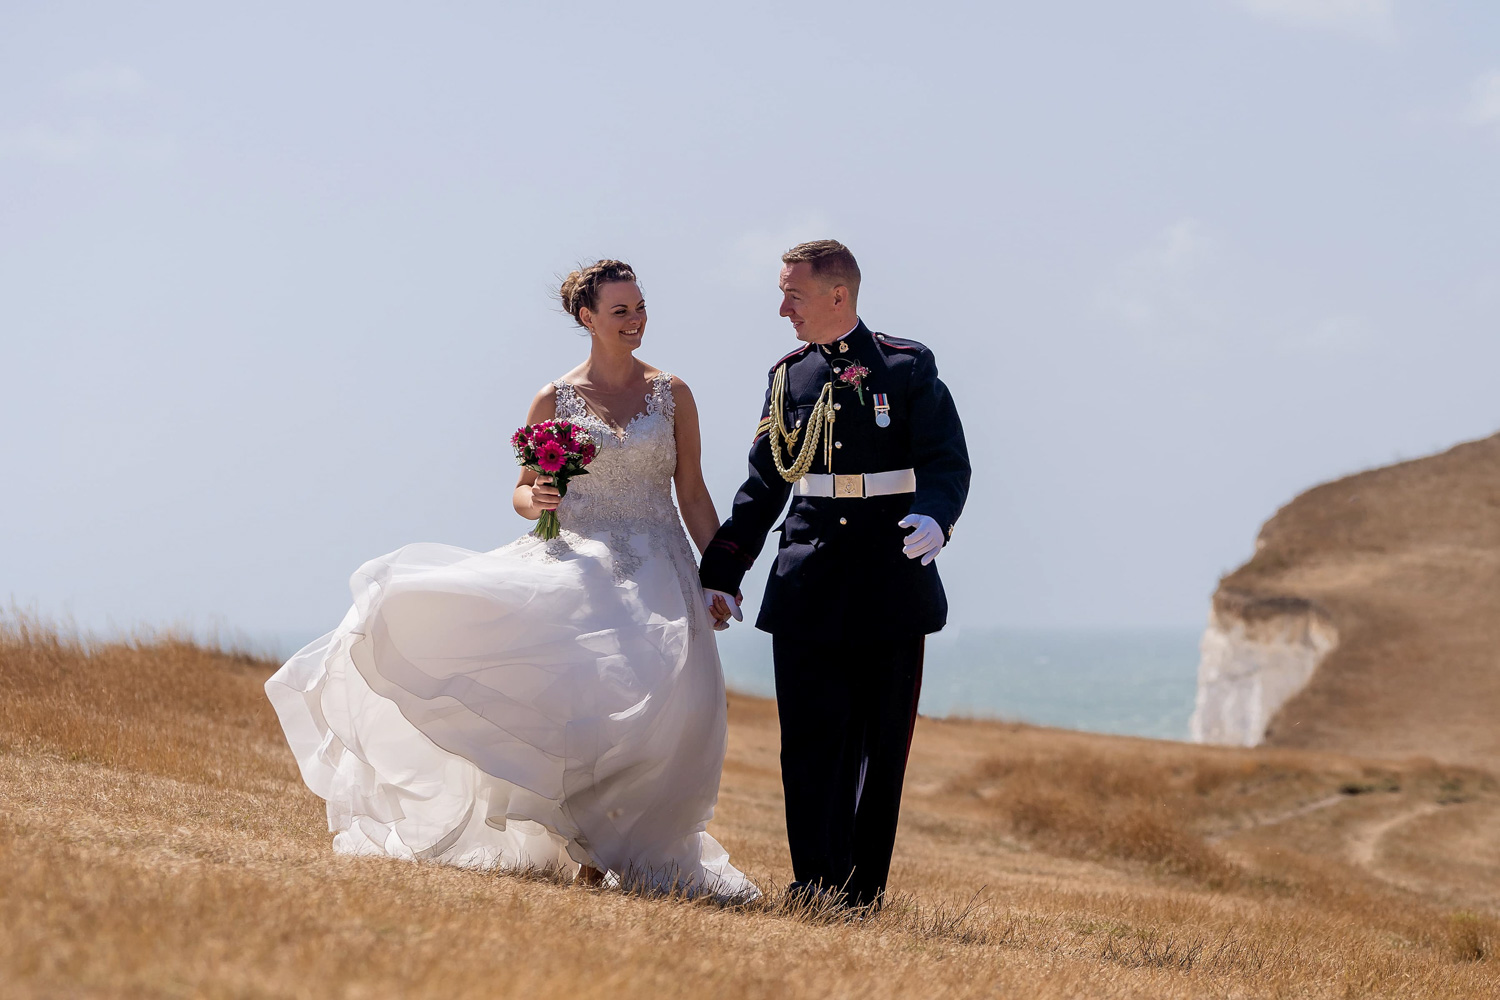 candid-military-wedding-photography.jpg